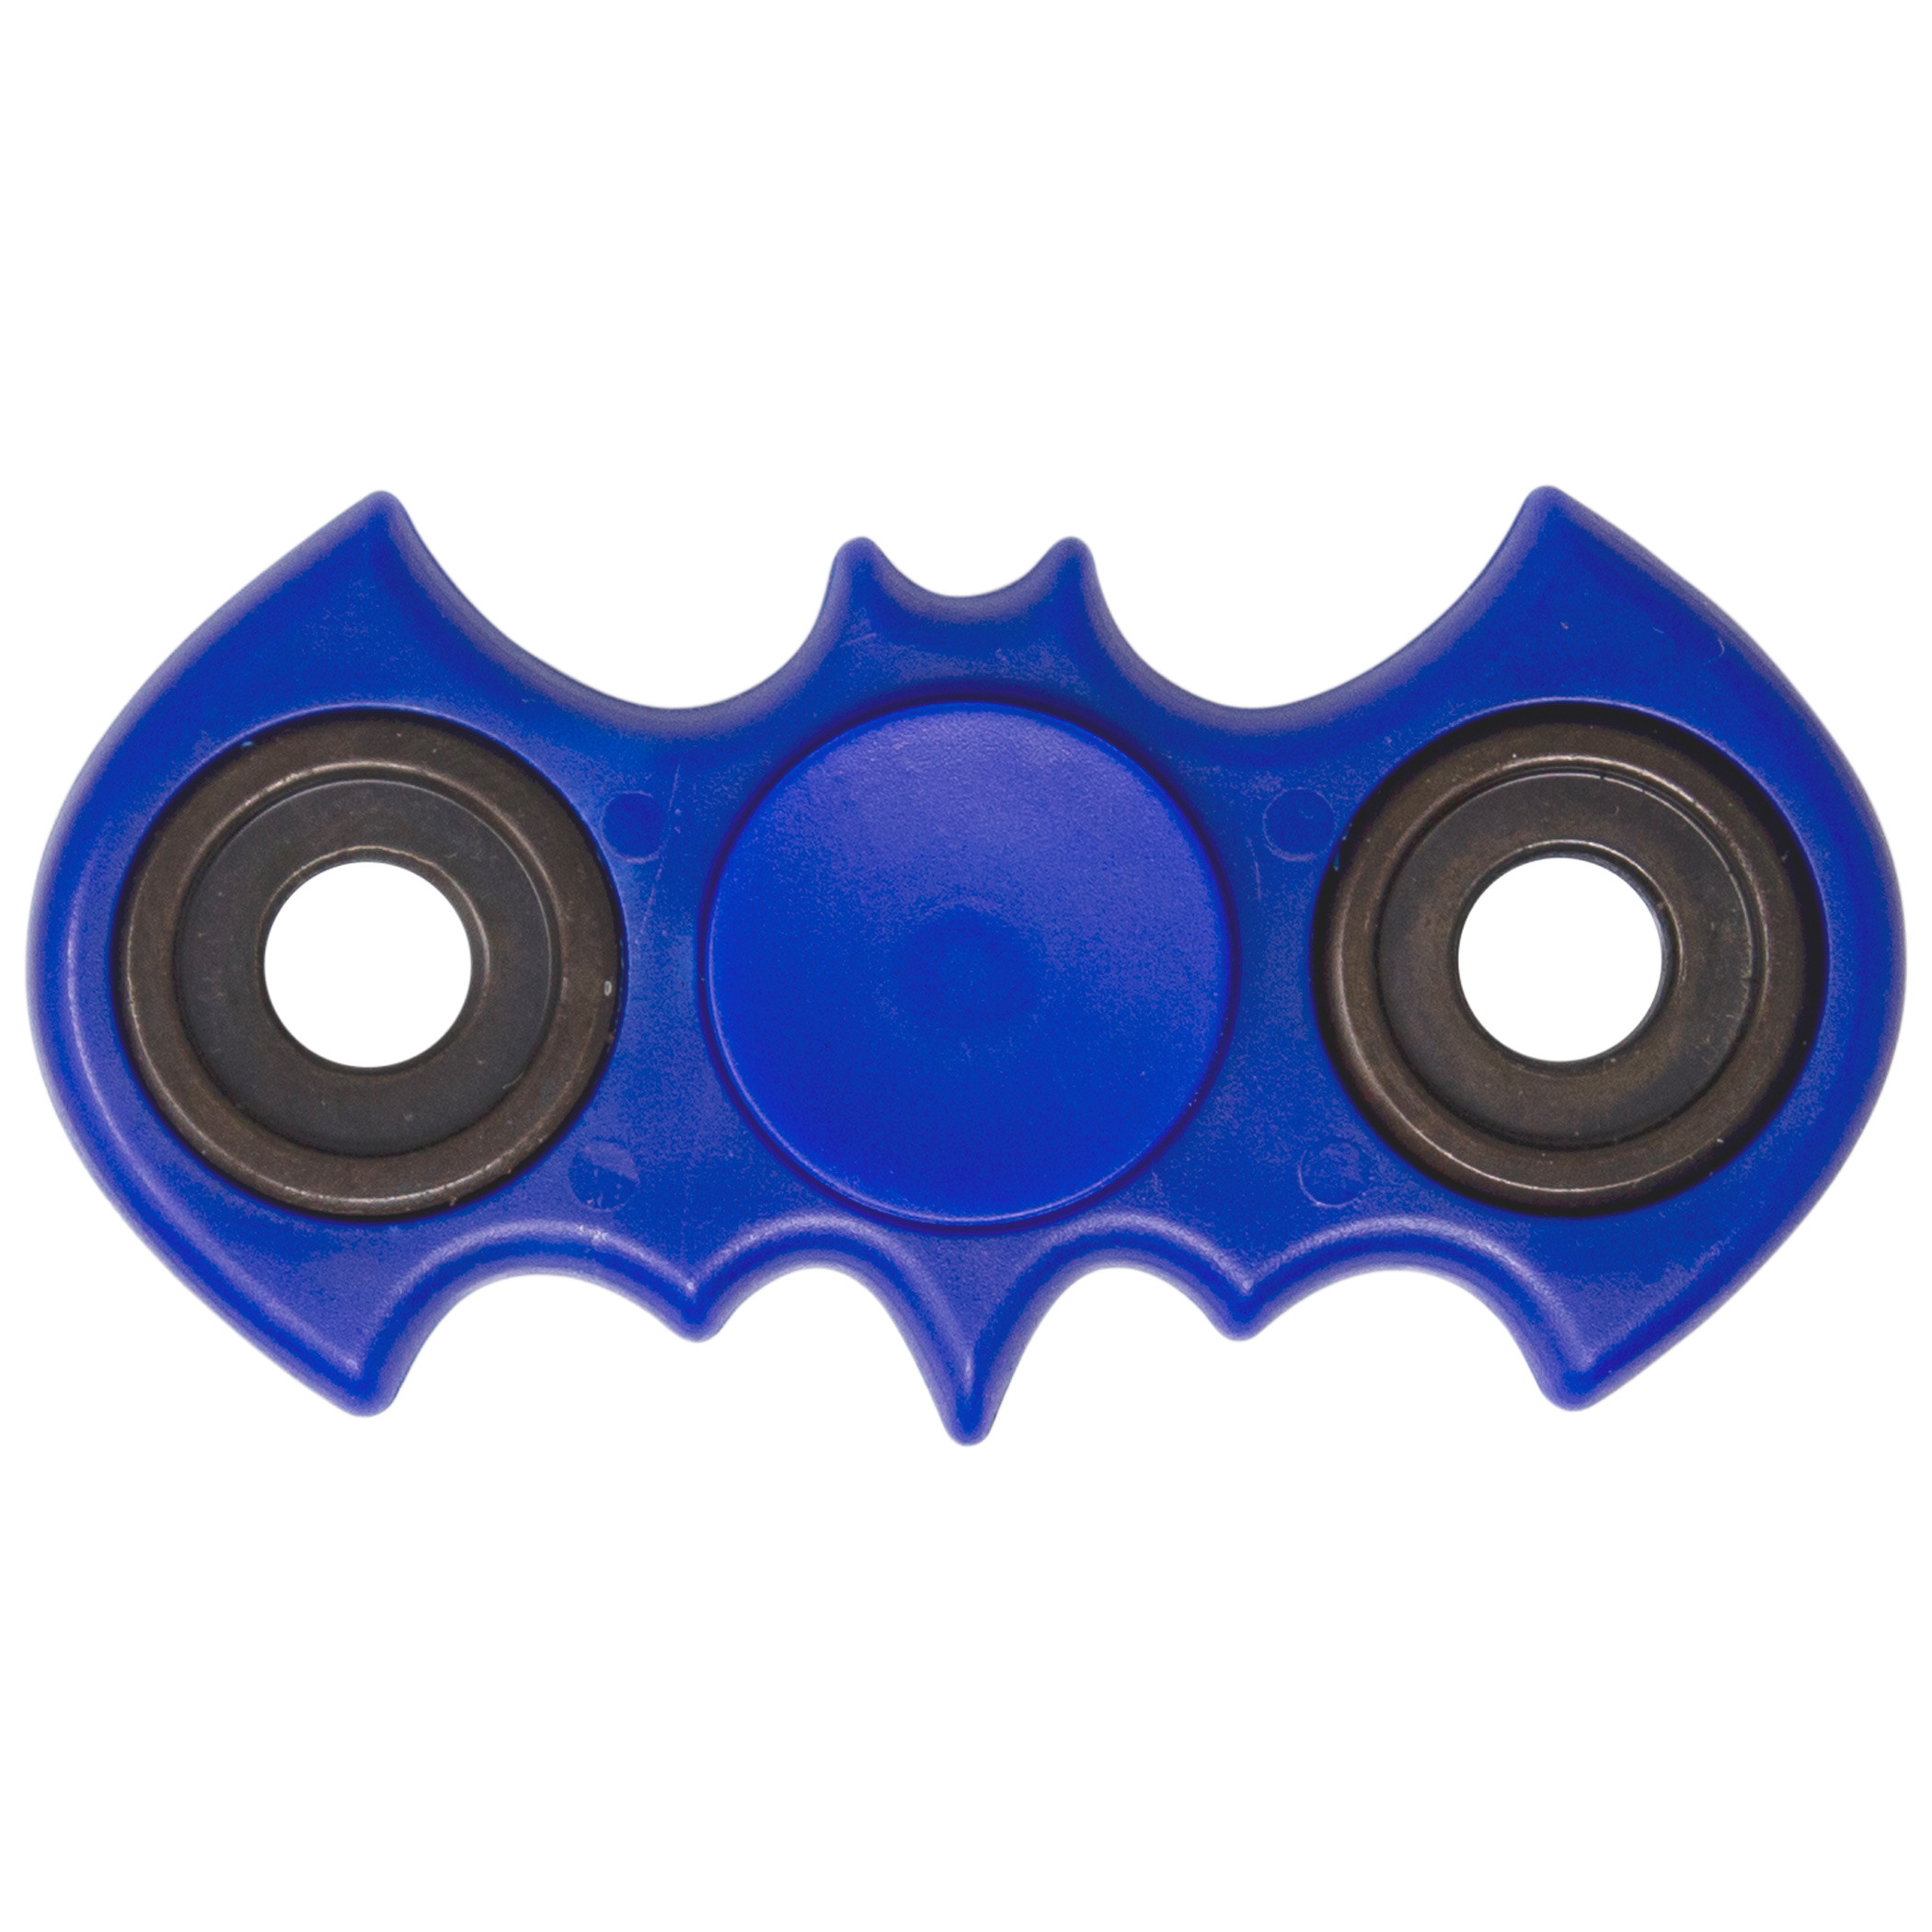 Finger spinner Batman